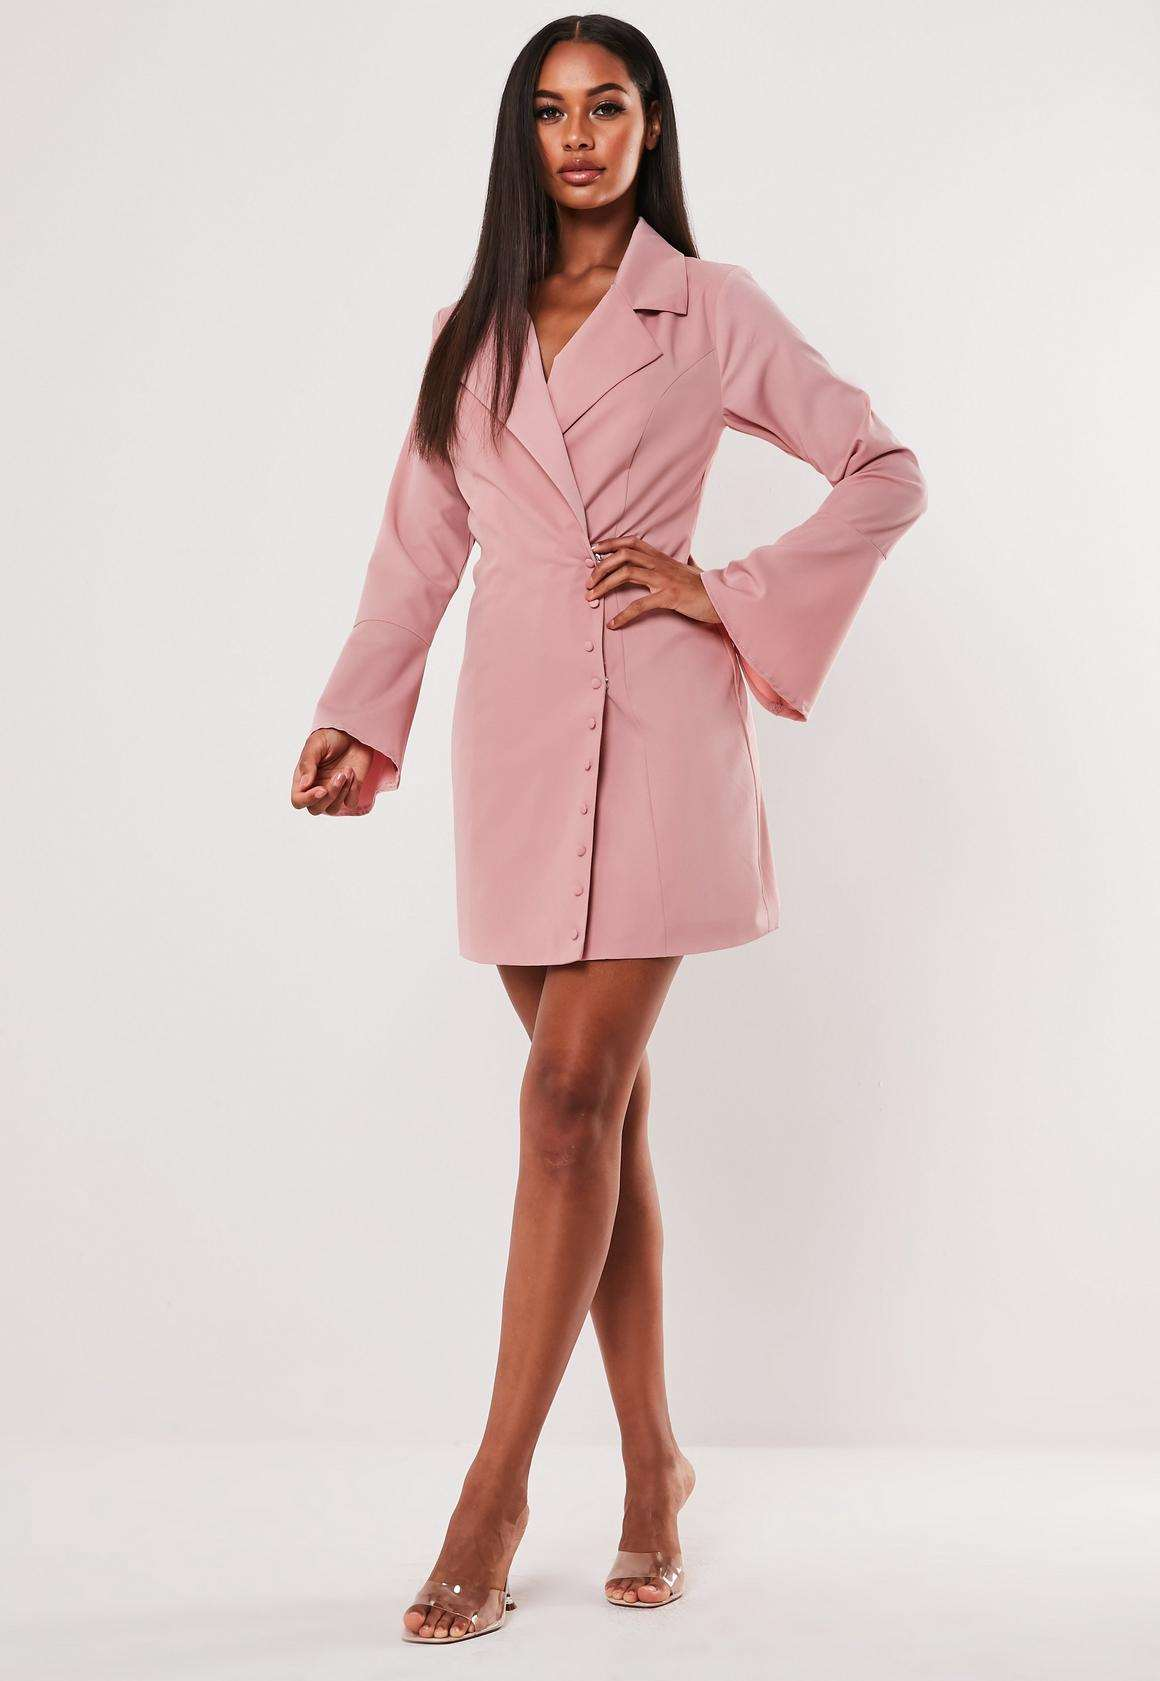 vestidoblazerMissguided. Vestido-blazer color maquillaje de Miss Guided